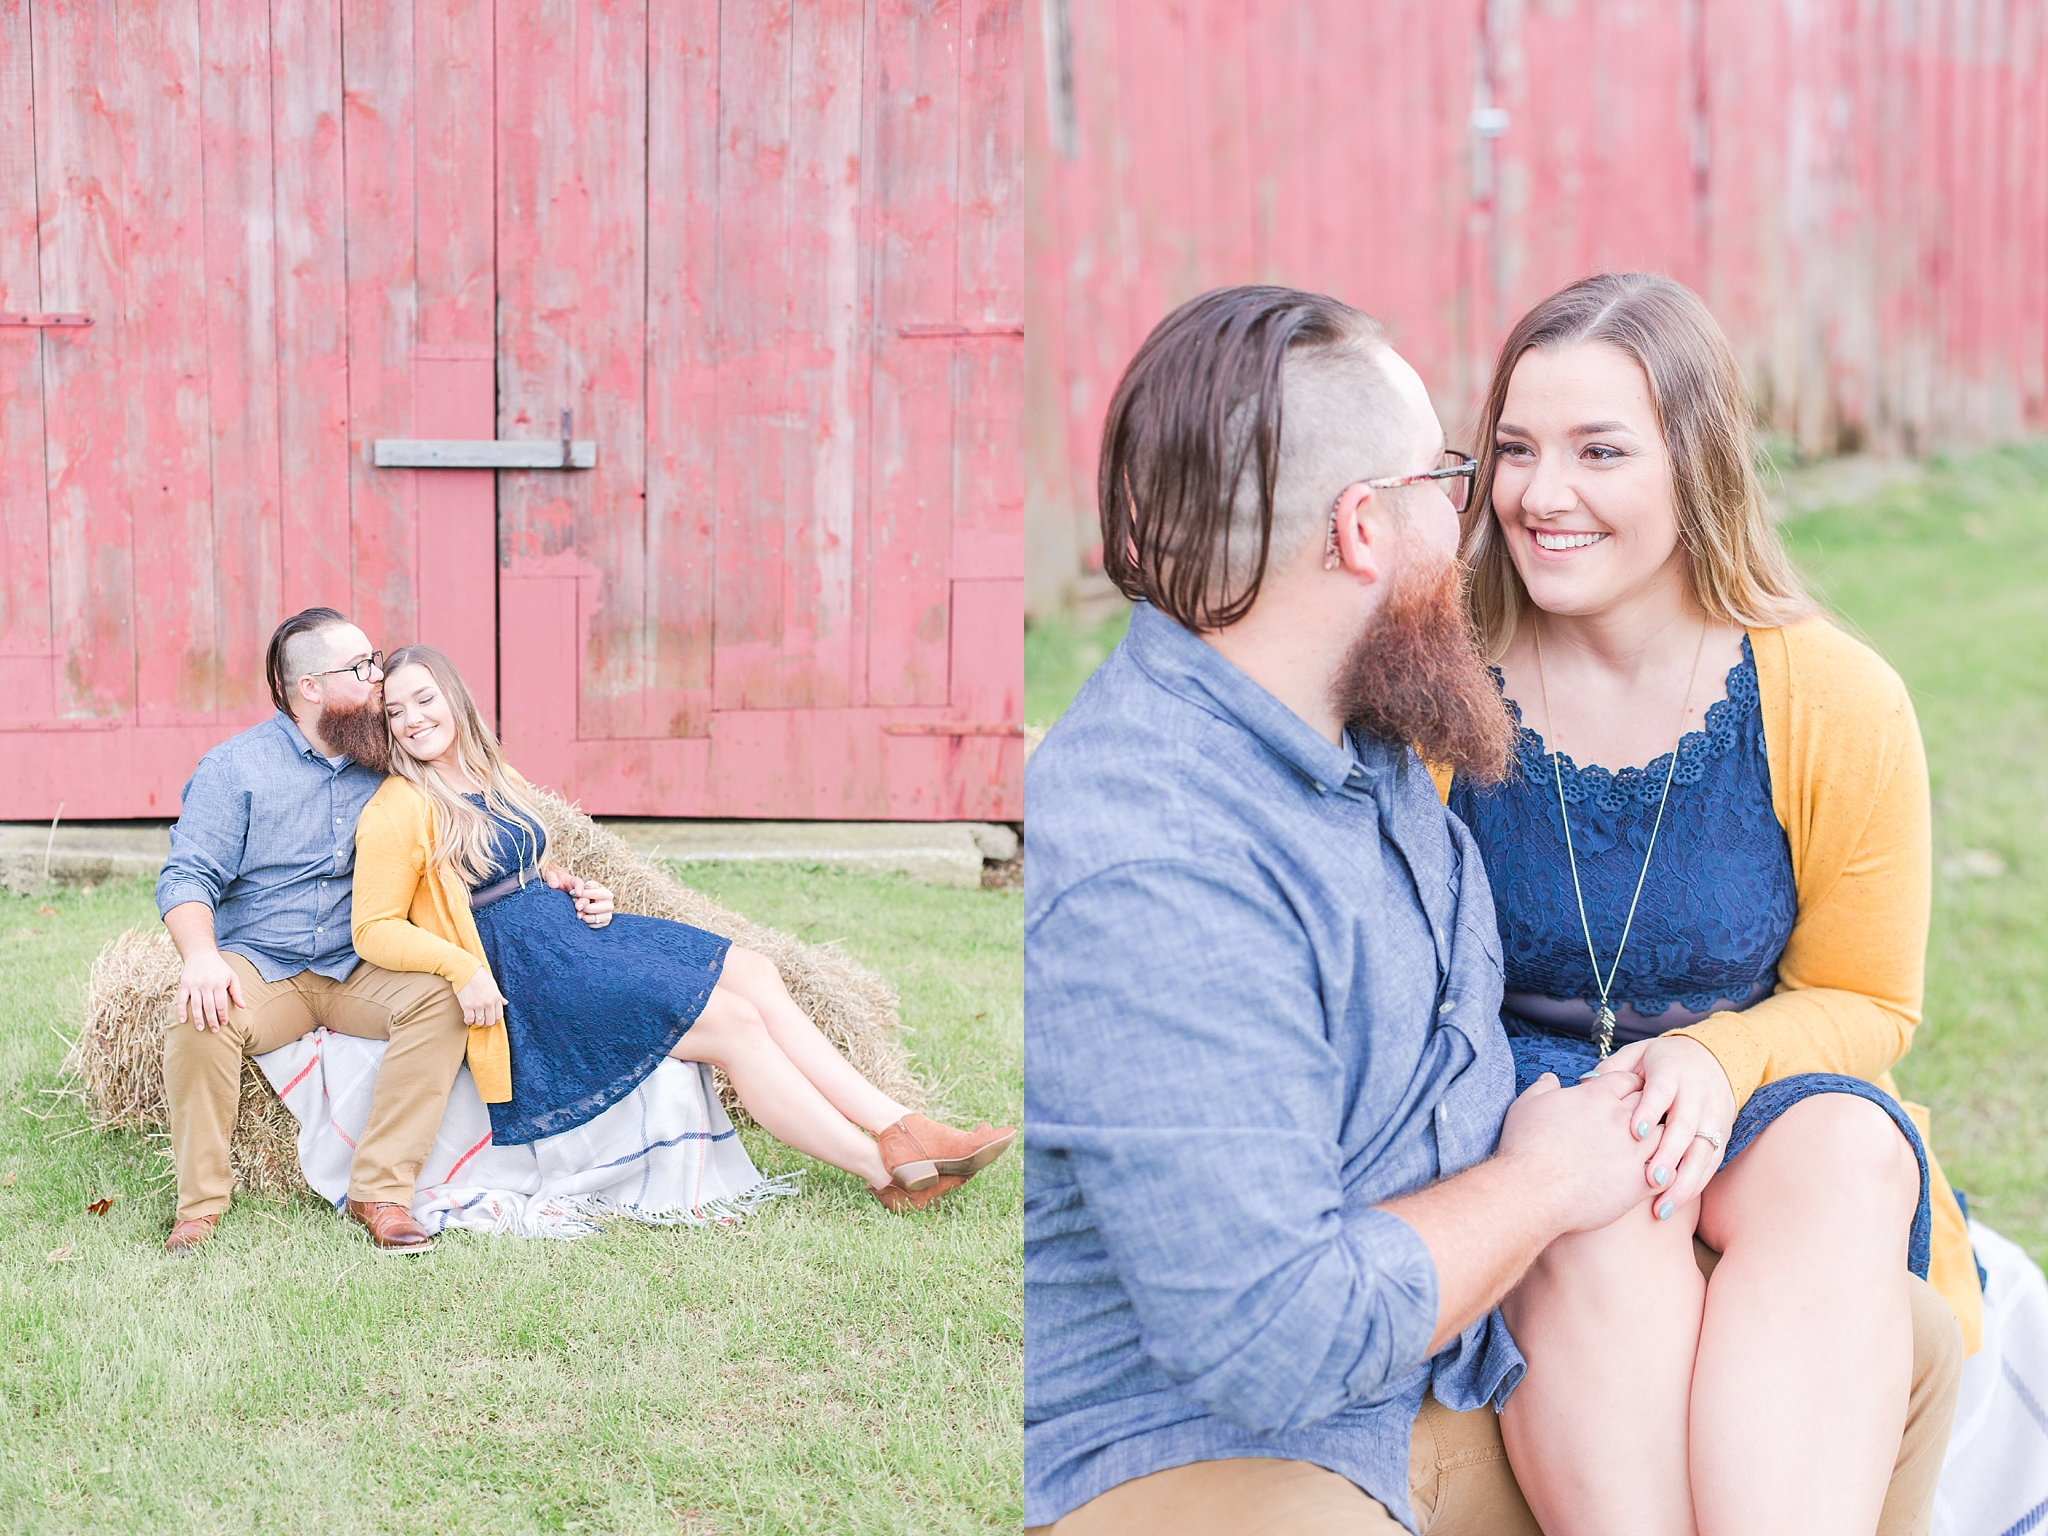 cozy-fall-engagement-photos-at-an-old-family-farm-in-monroe-michigan-by-courtney-carolyn-photography_0016.jpg